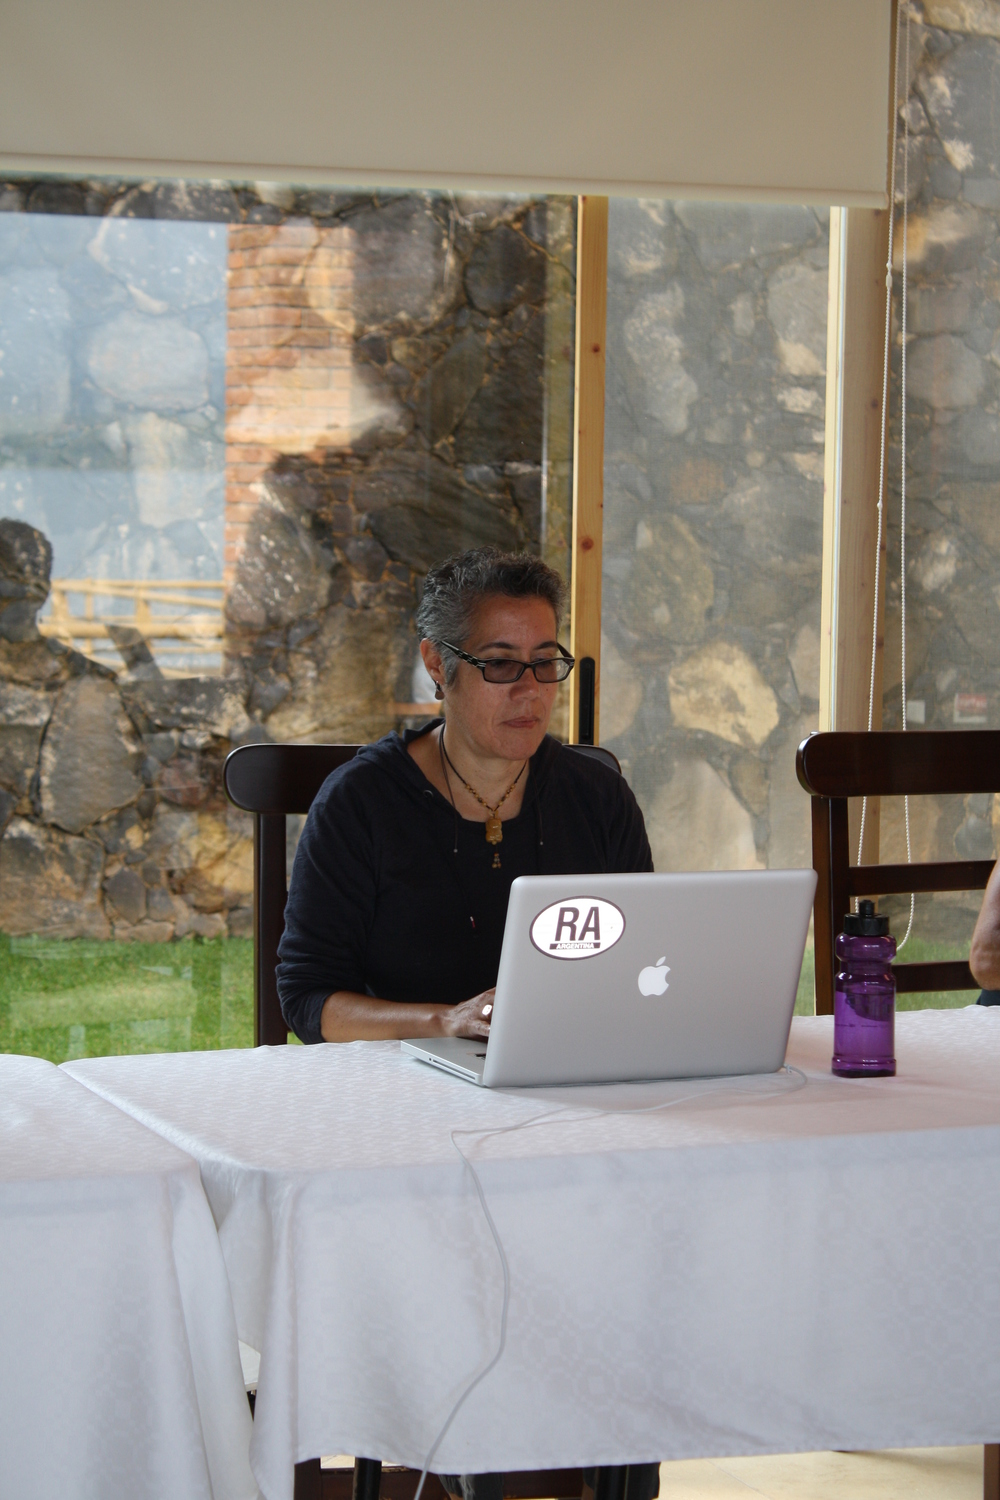 Working on script re-write at Cine Qua Non Lab Writer's Residency in Morelia, México.